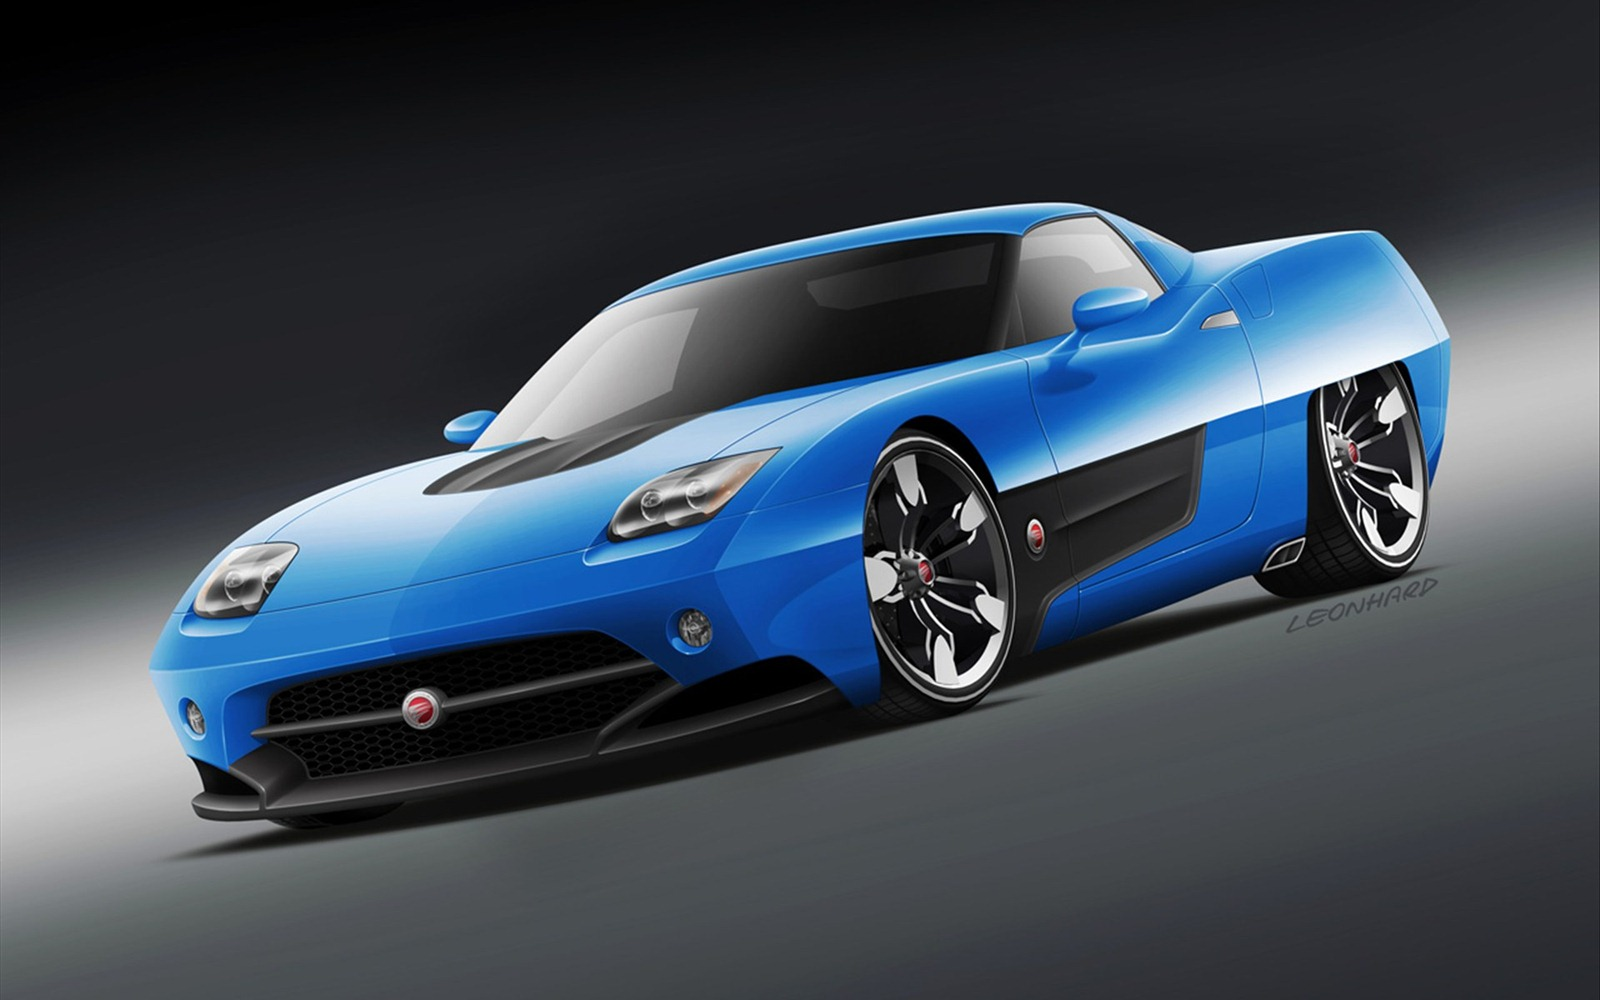 Endora SC 1 Corvette sports car wallpapers 19201200 Hot Cars Zone 1600x1000